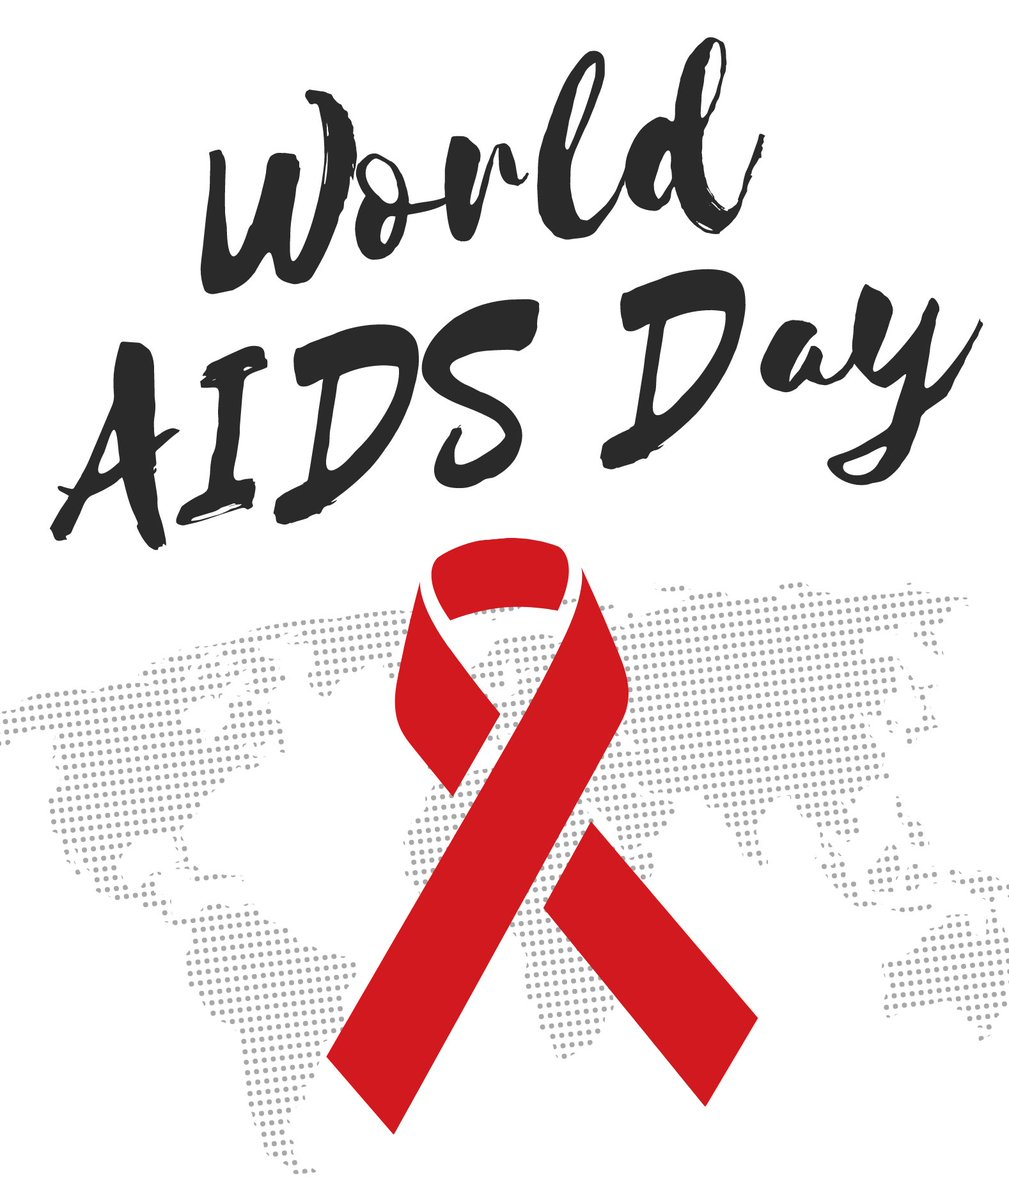 On #WorldAIDSDay we join our patients, providers, family members, and friends to raise awareness about HIV/AIDS, and to remember those we've lost. Today is a day of reflection on those we have lost, but it is also a day of hope that someday soon, there will be a cure.